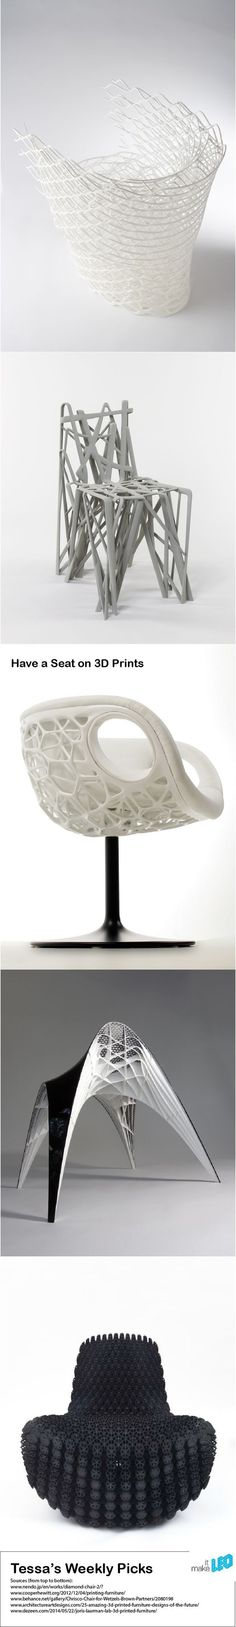 Make it LEO Tessa's Weekly Pick - have a seat on high quality 3D Printed Chair designs